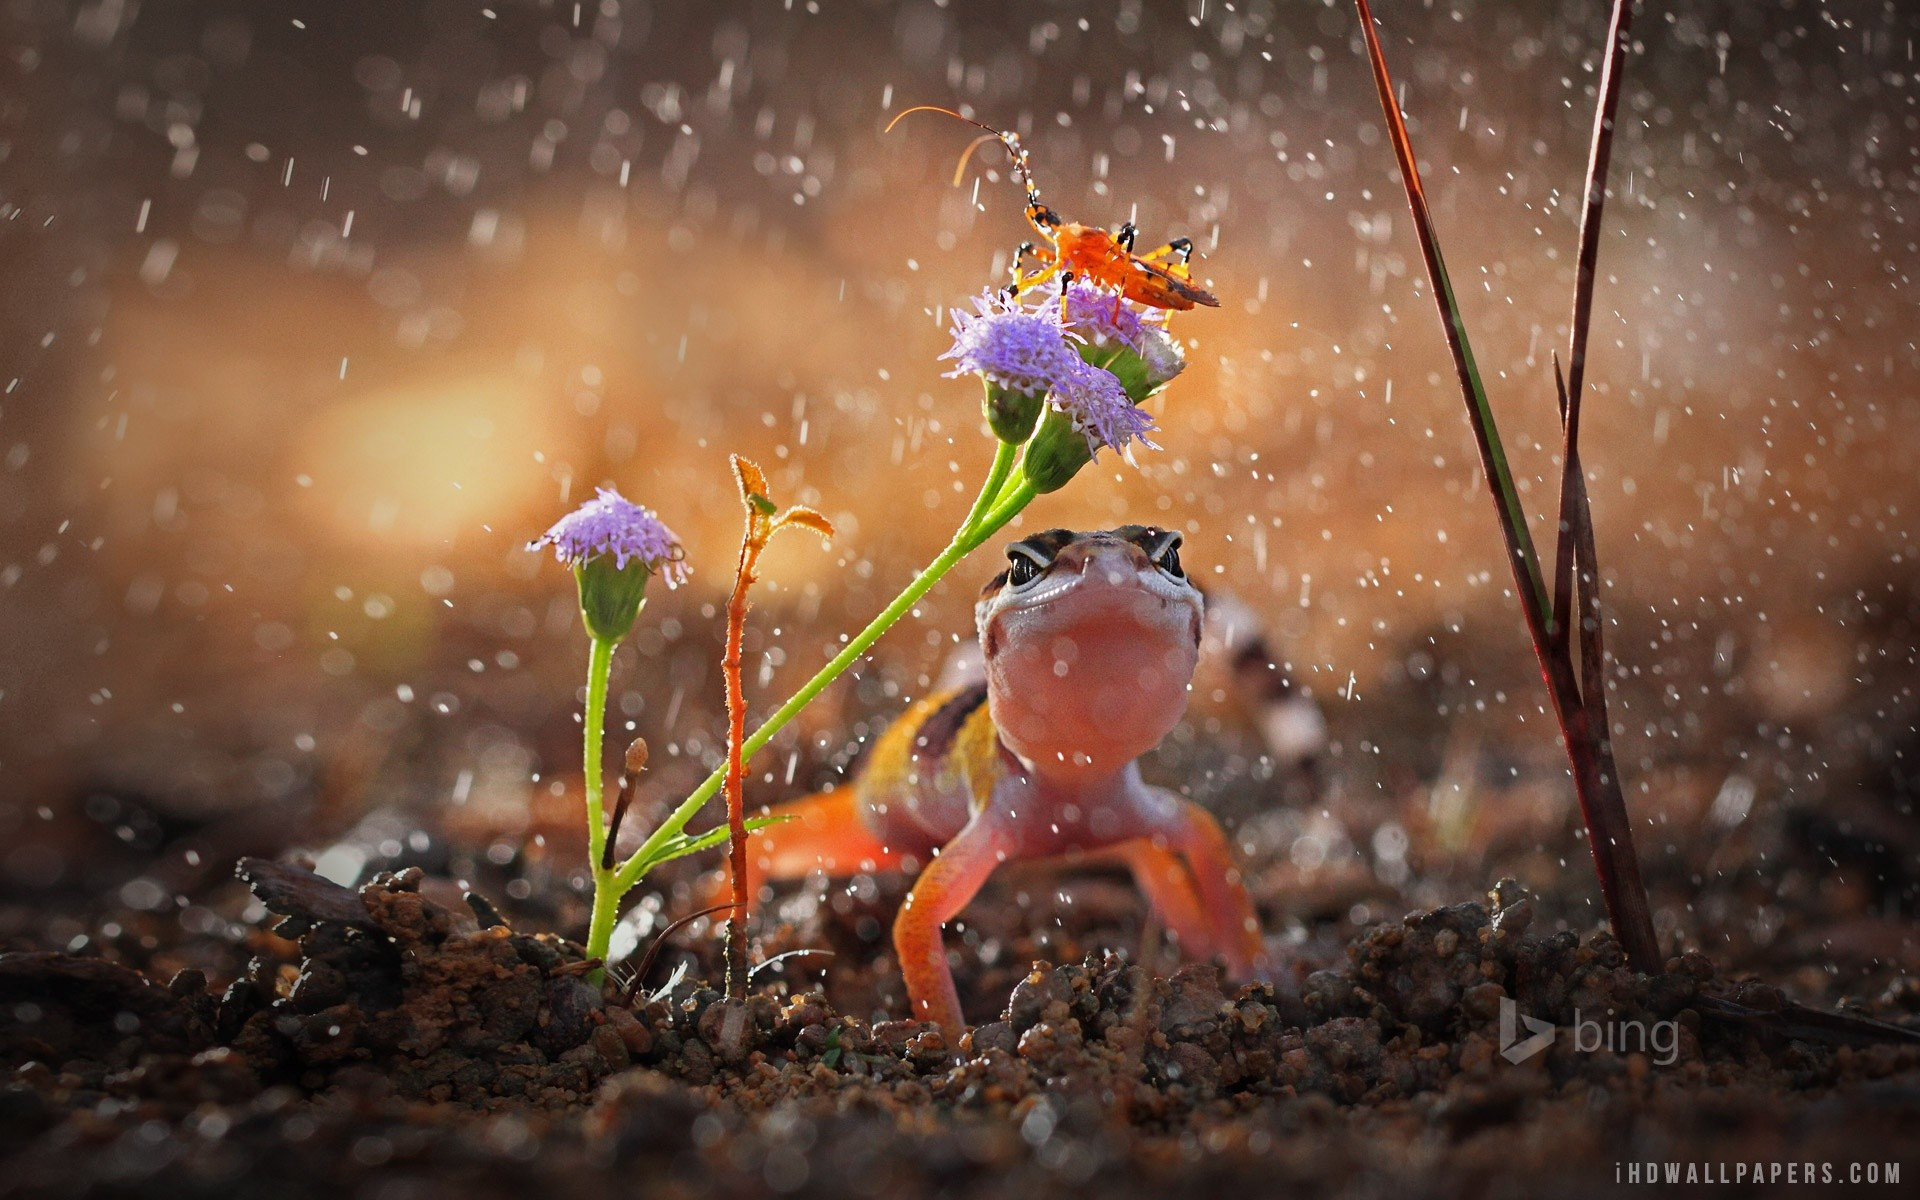 1920x1200 Raining Wallpapers Group 1920×1200 Rainy Day Images Wallpapers (43  Wallpapers) | Adorable